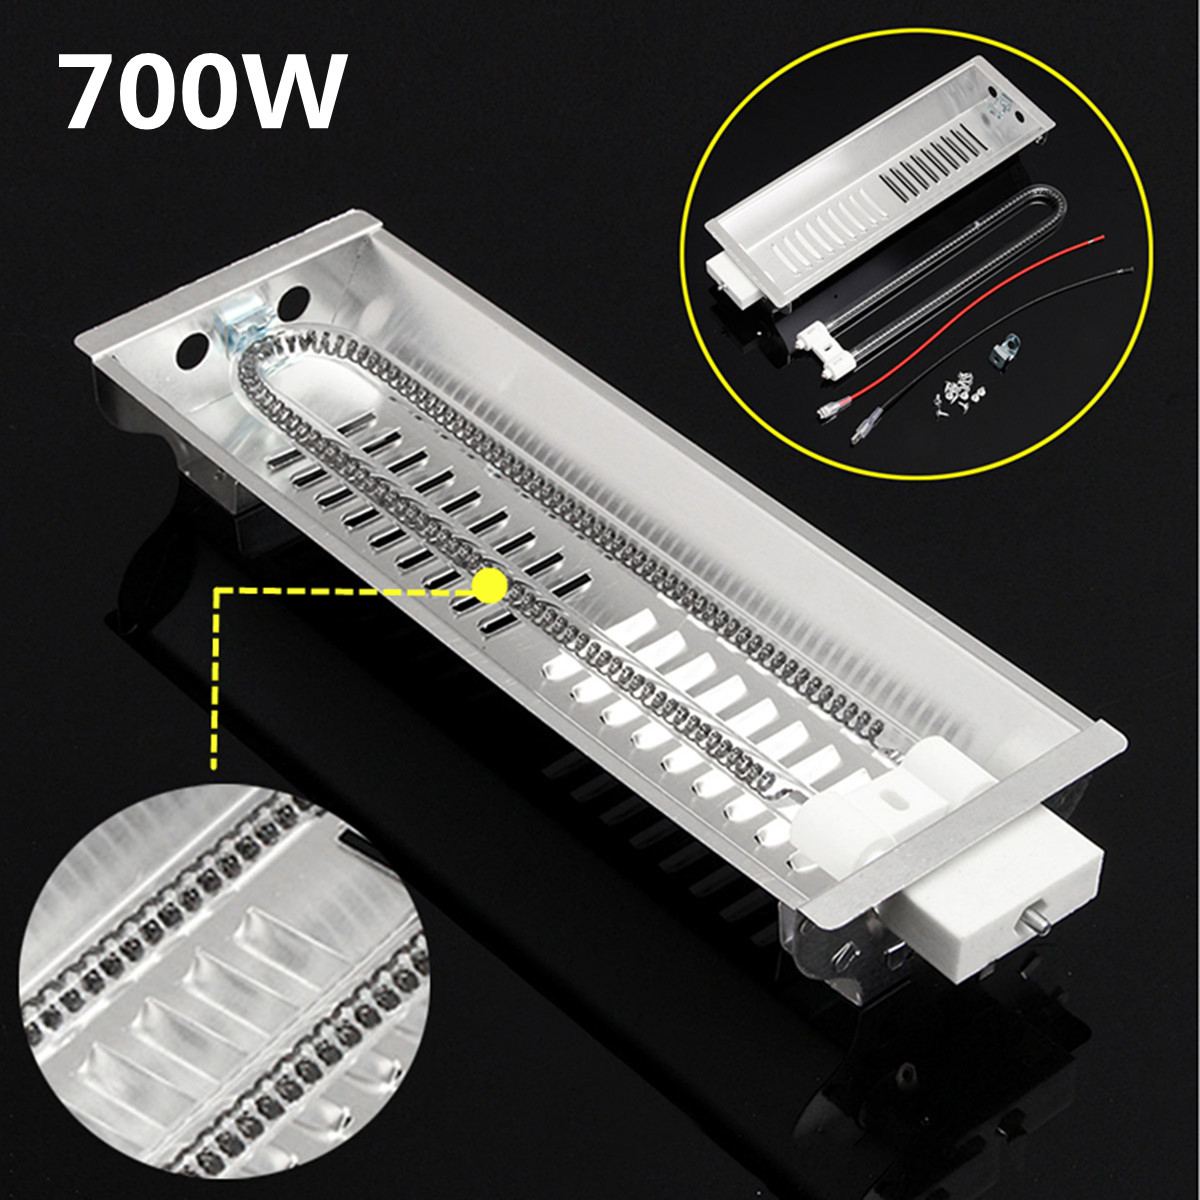 New 700W Far Infrared Double Carbon Fiber Heater Radiant Wave Paint Curing Heating Lamp For Baking Oven